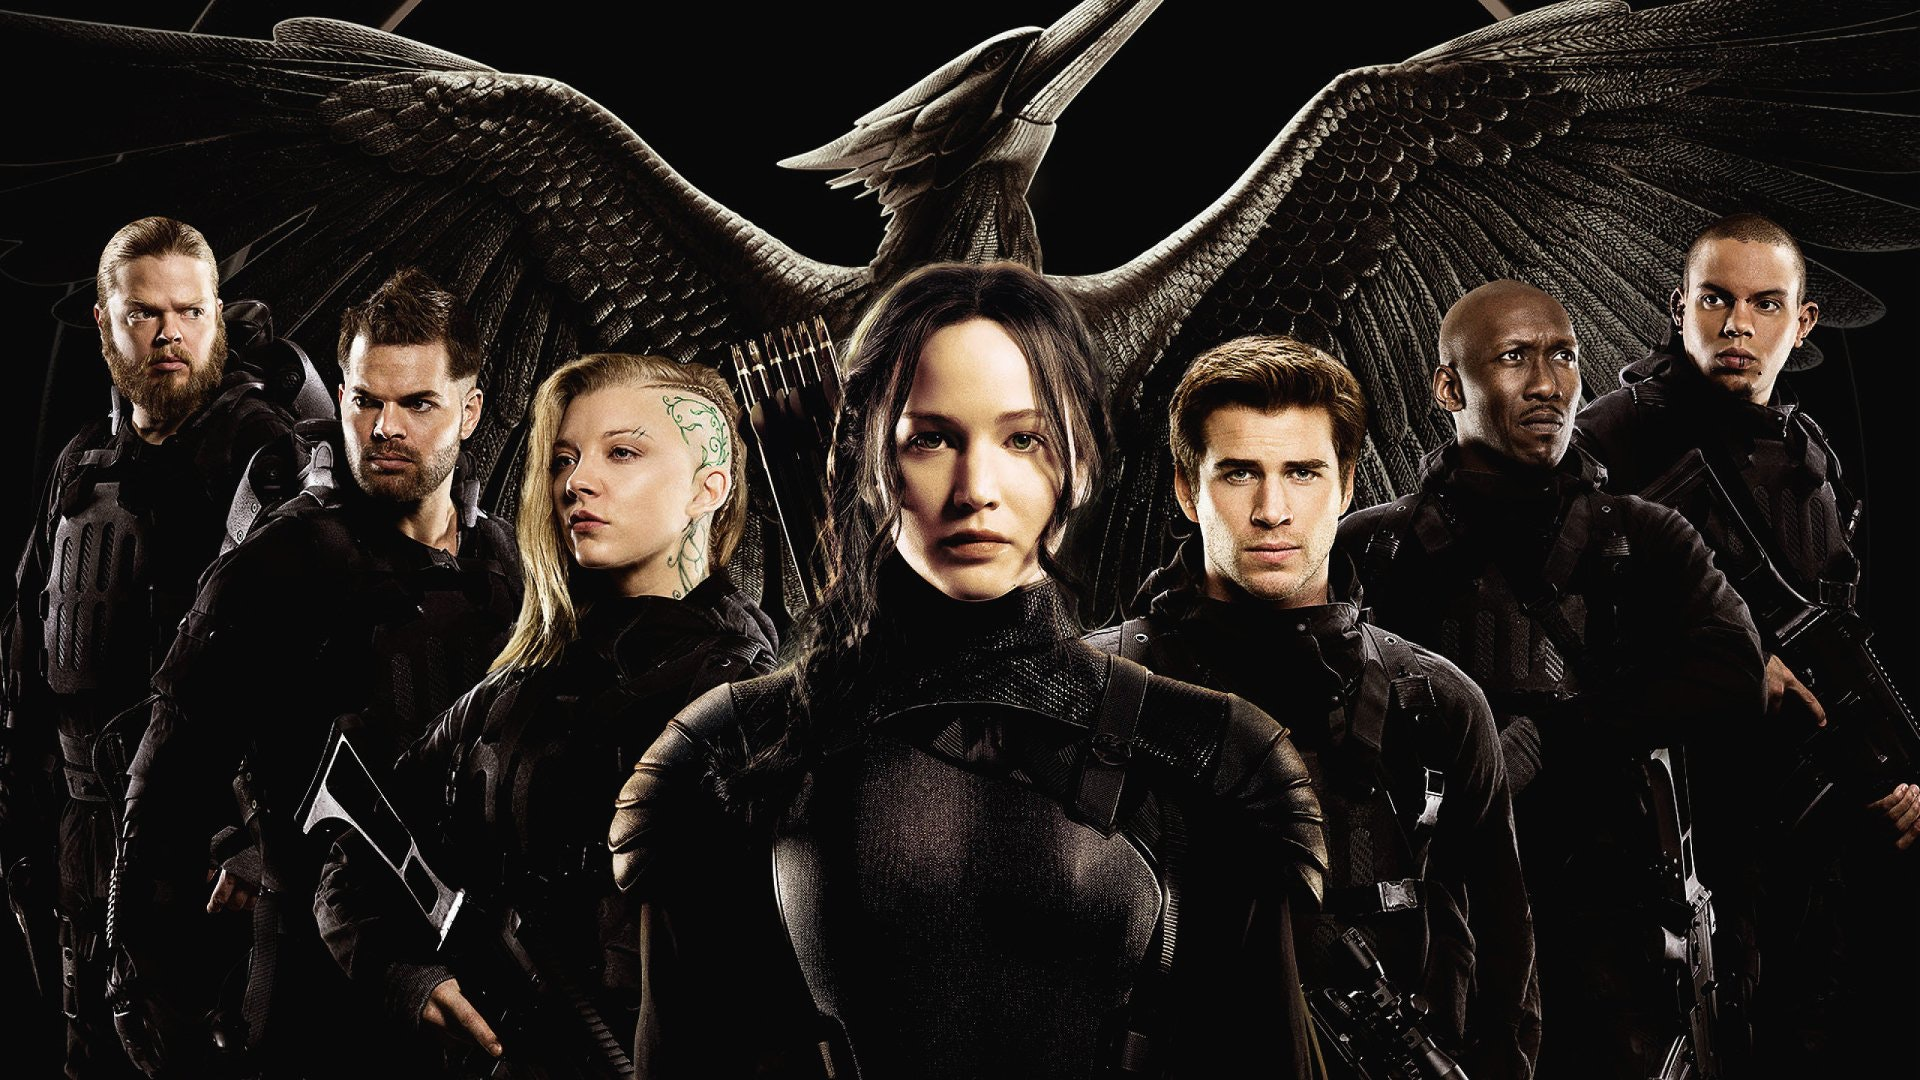 The Hunger Games: Mockingjay Part I Soundtrack